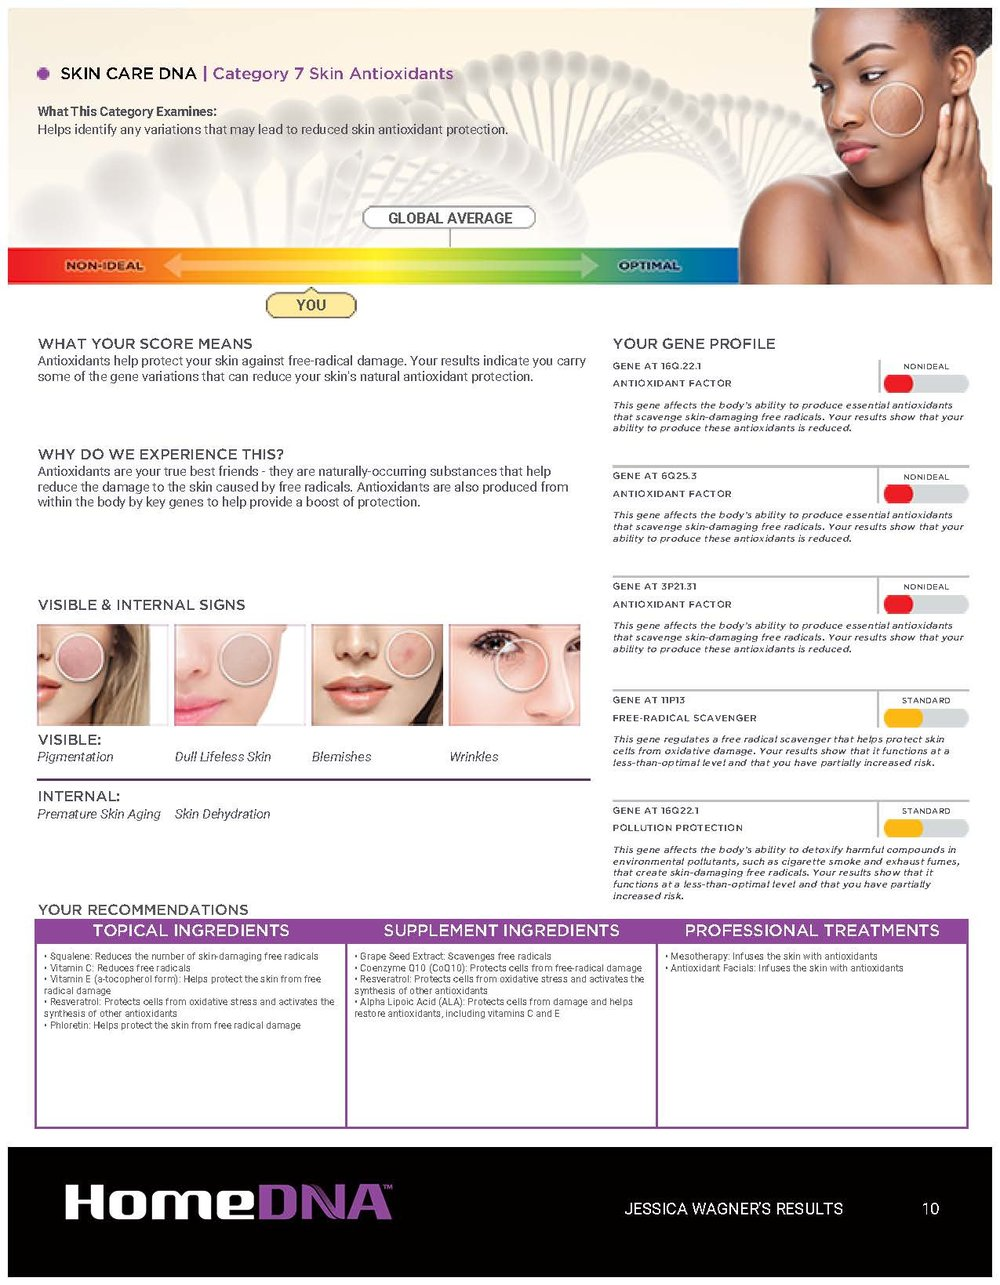 Jess_DNA_Skin_Results_Page_10.jpg